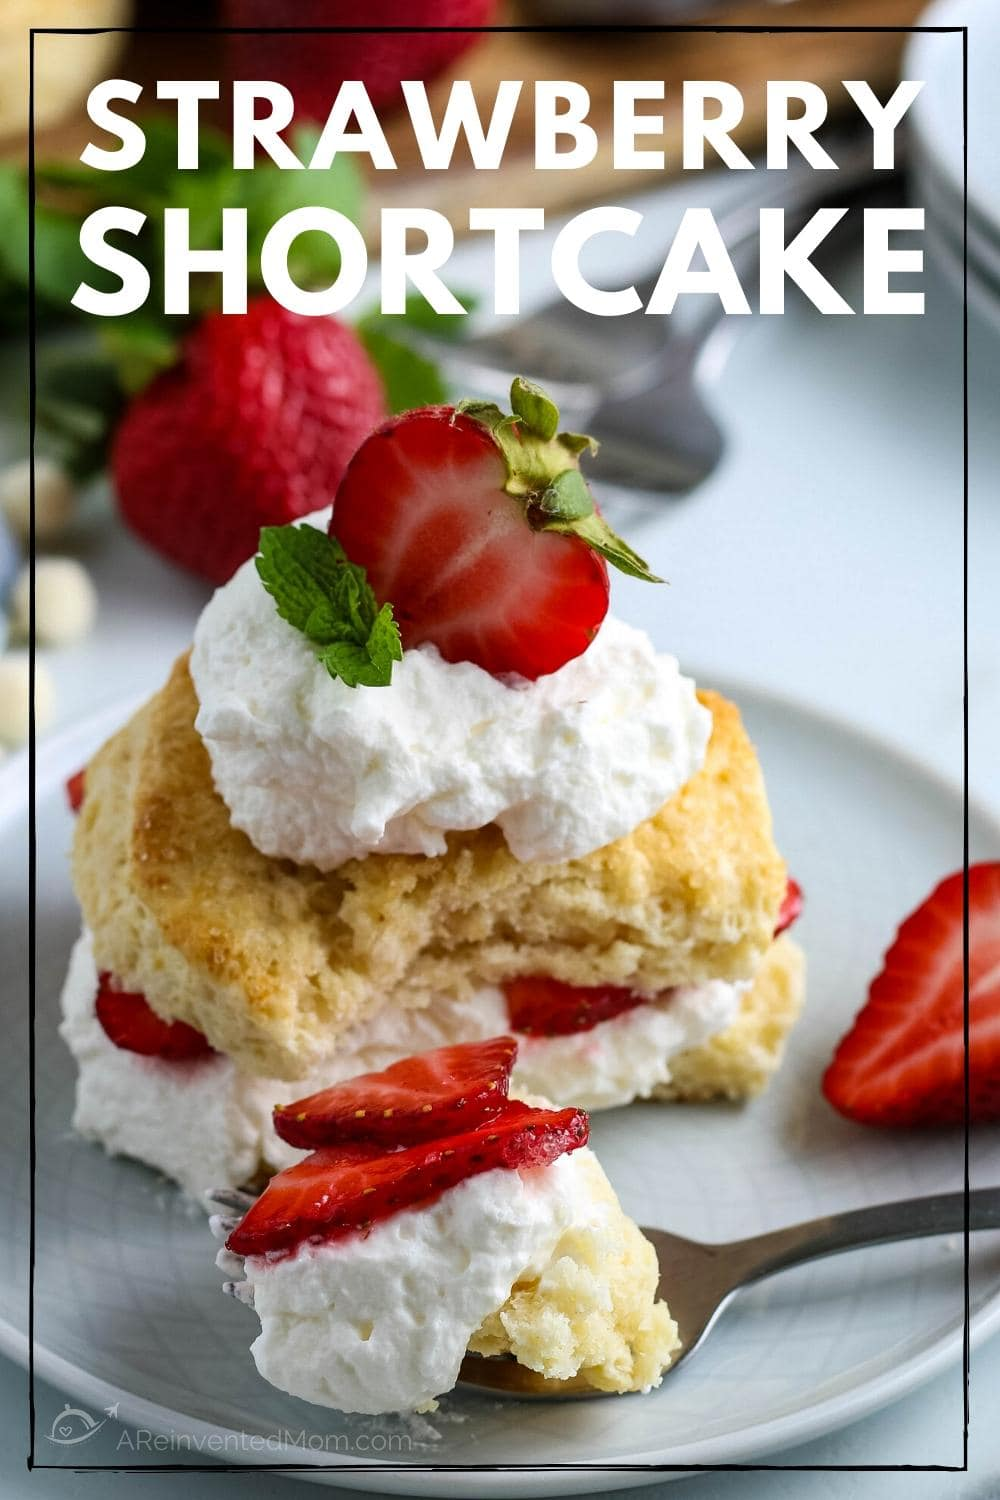 A bite of Strawberry Shortcake on a fork with sliced biscuit, whipped cream and strawberries on a white plate.